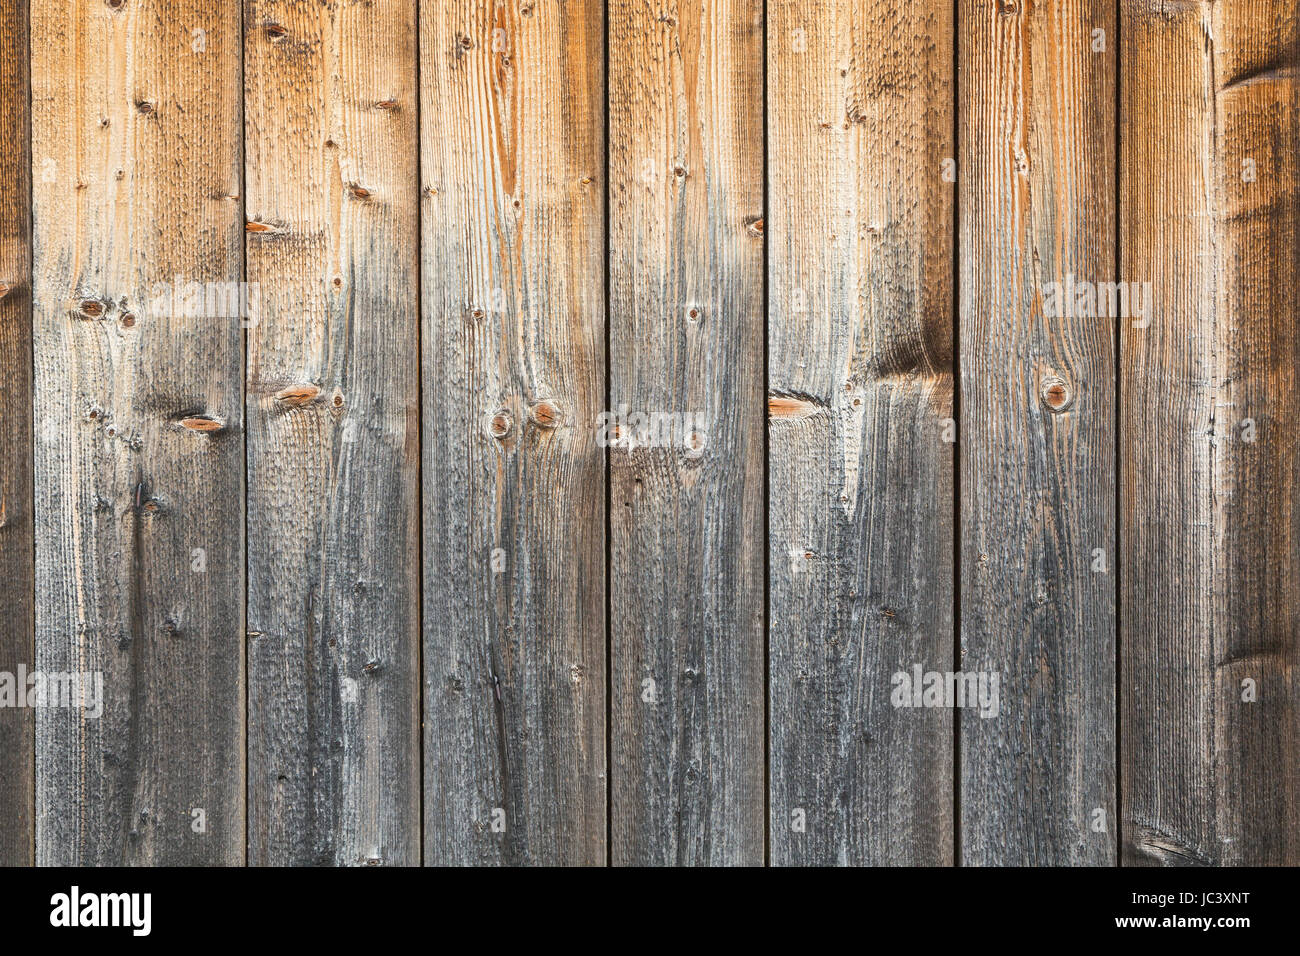 bretterwand verwitterte banque d'images, photo stock: 145145668 - alamy